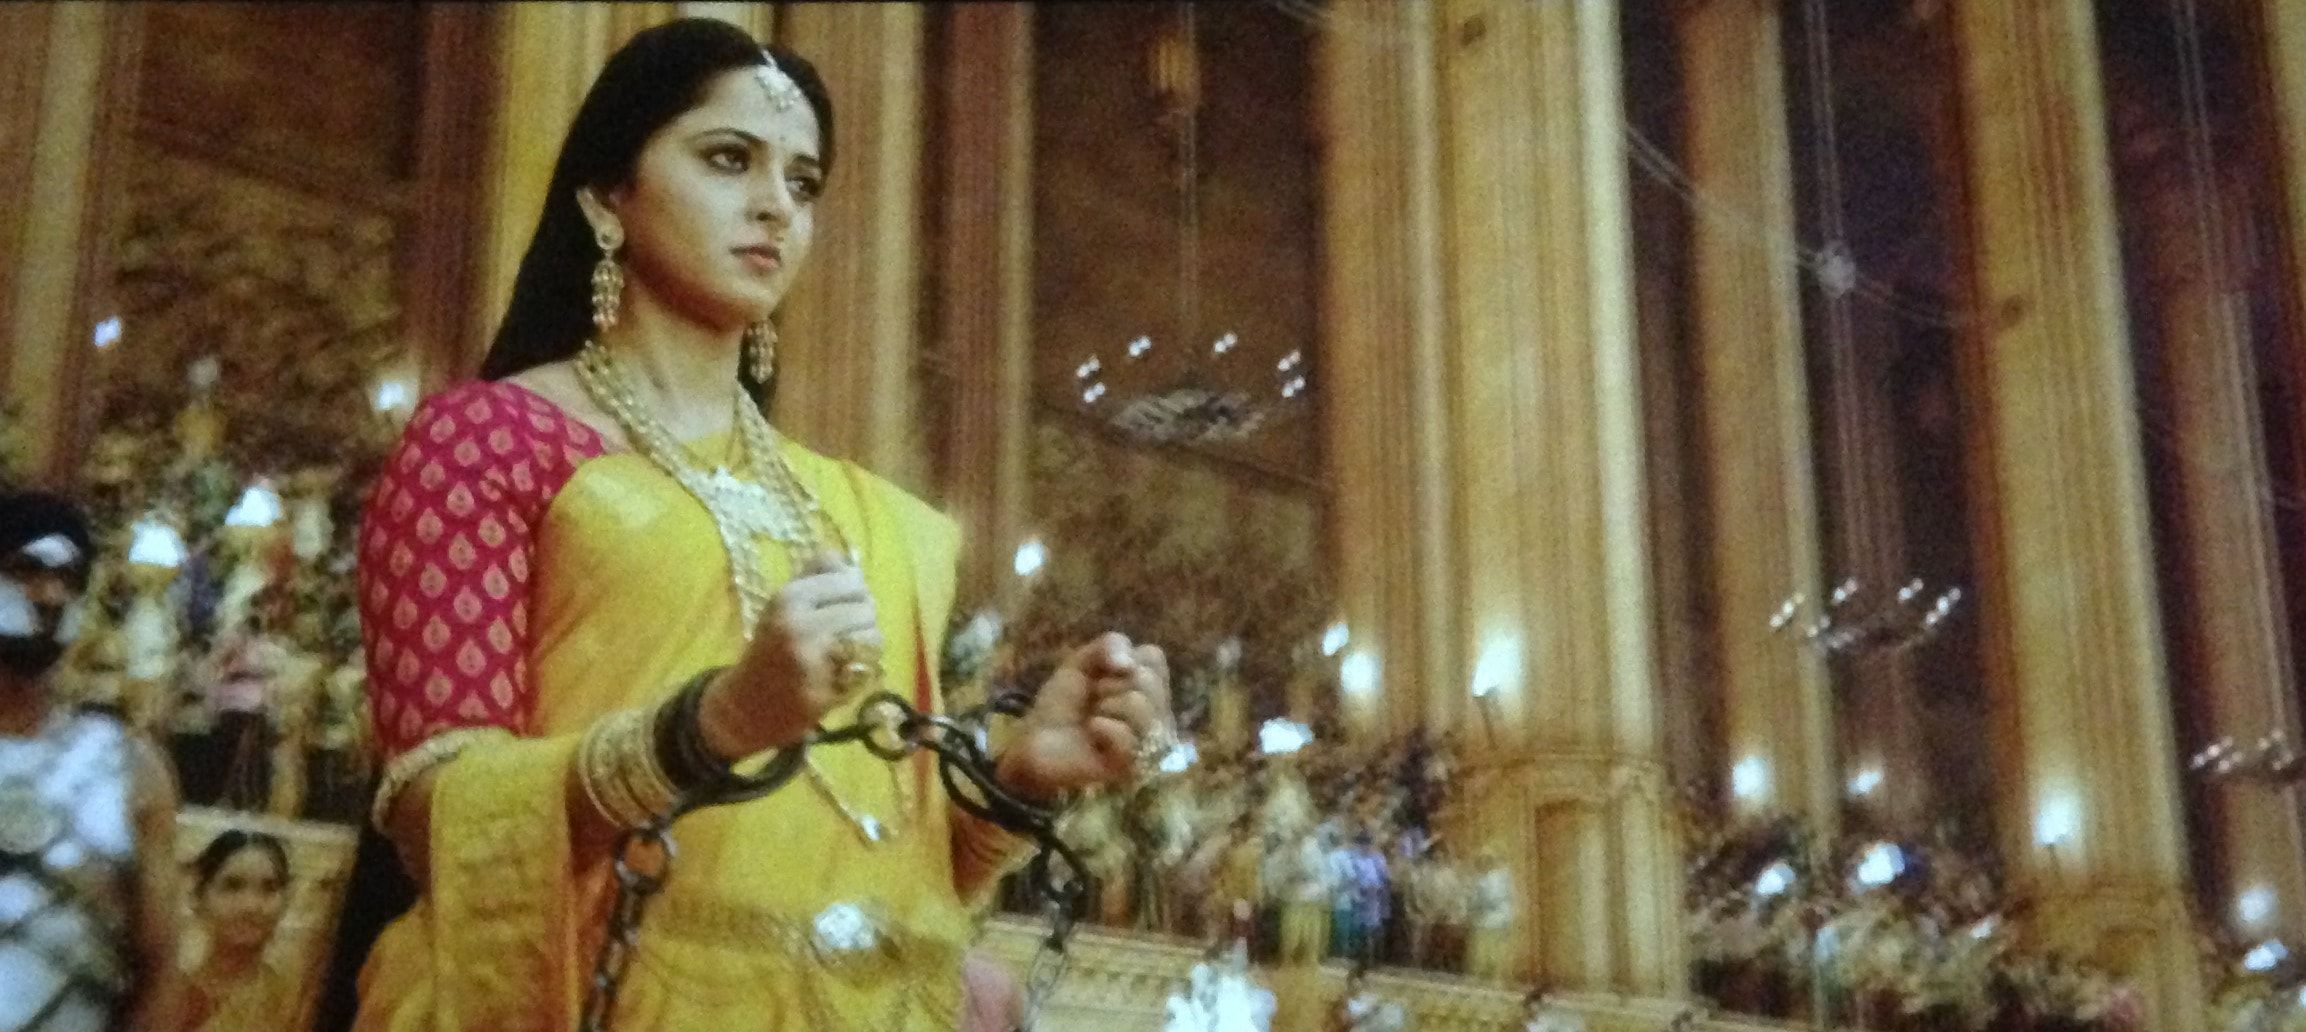 Prabhas And Anushka In Bahubali Anushka Shetty in bahu...